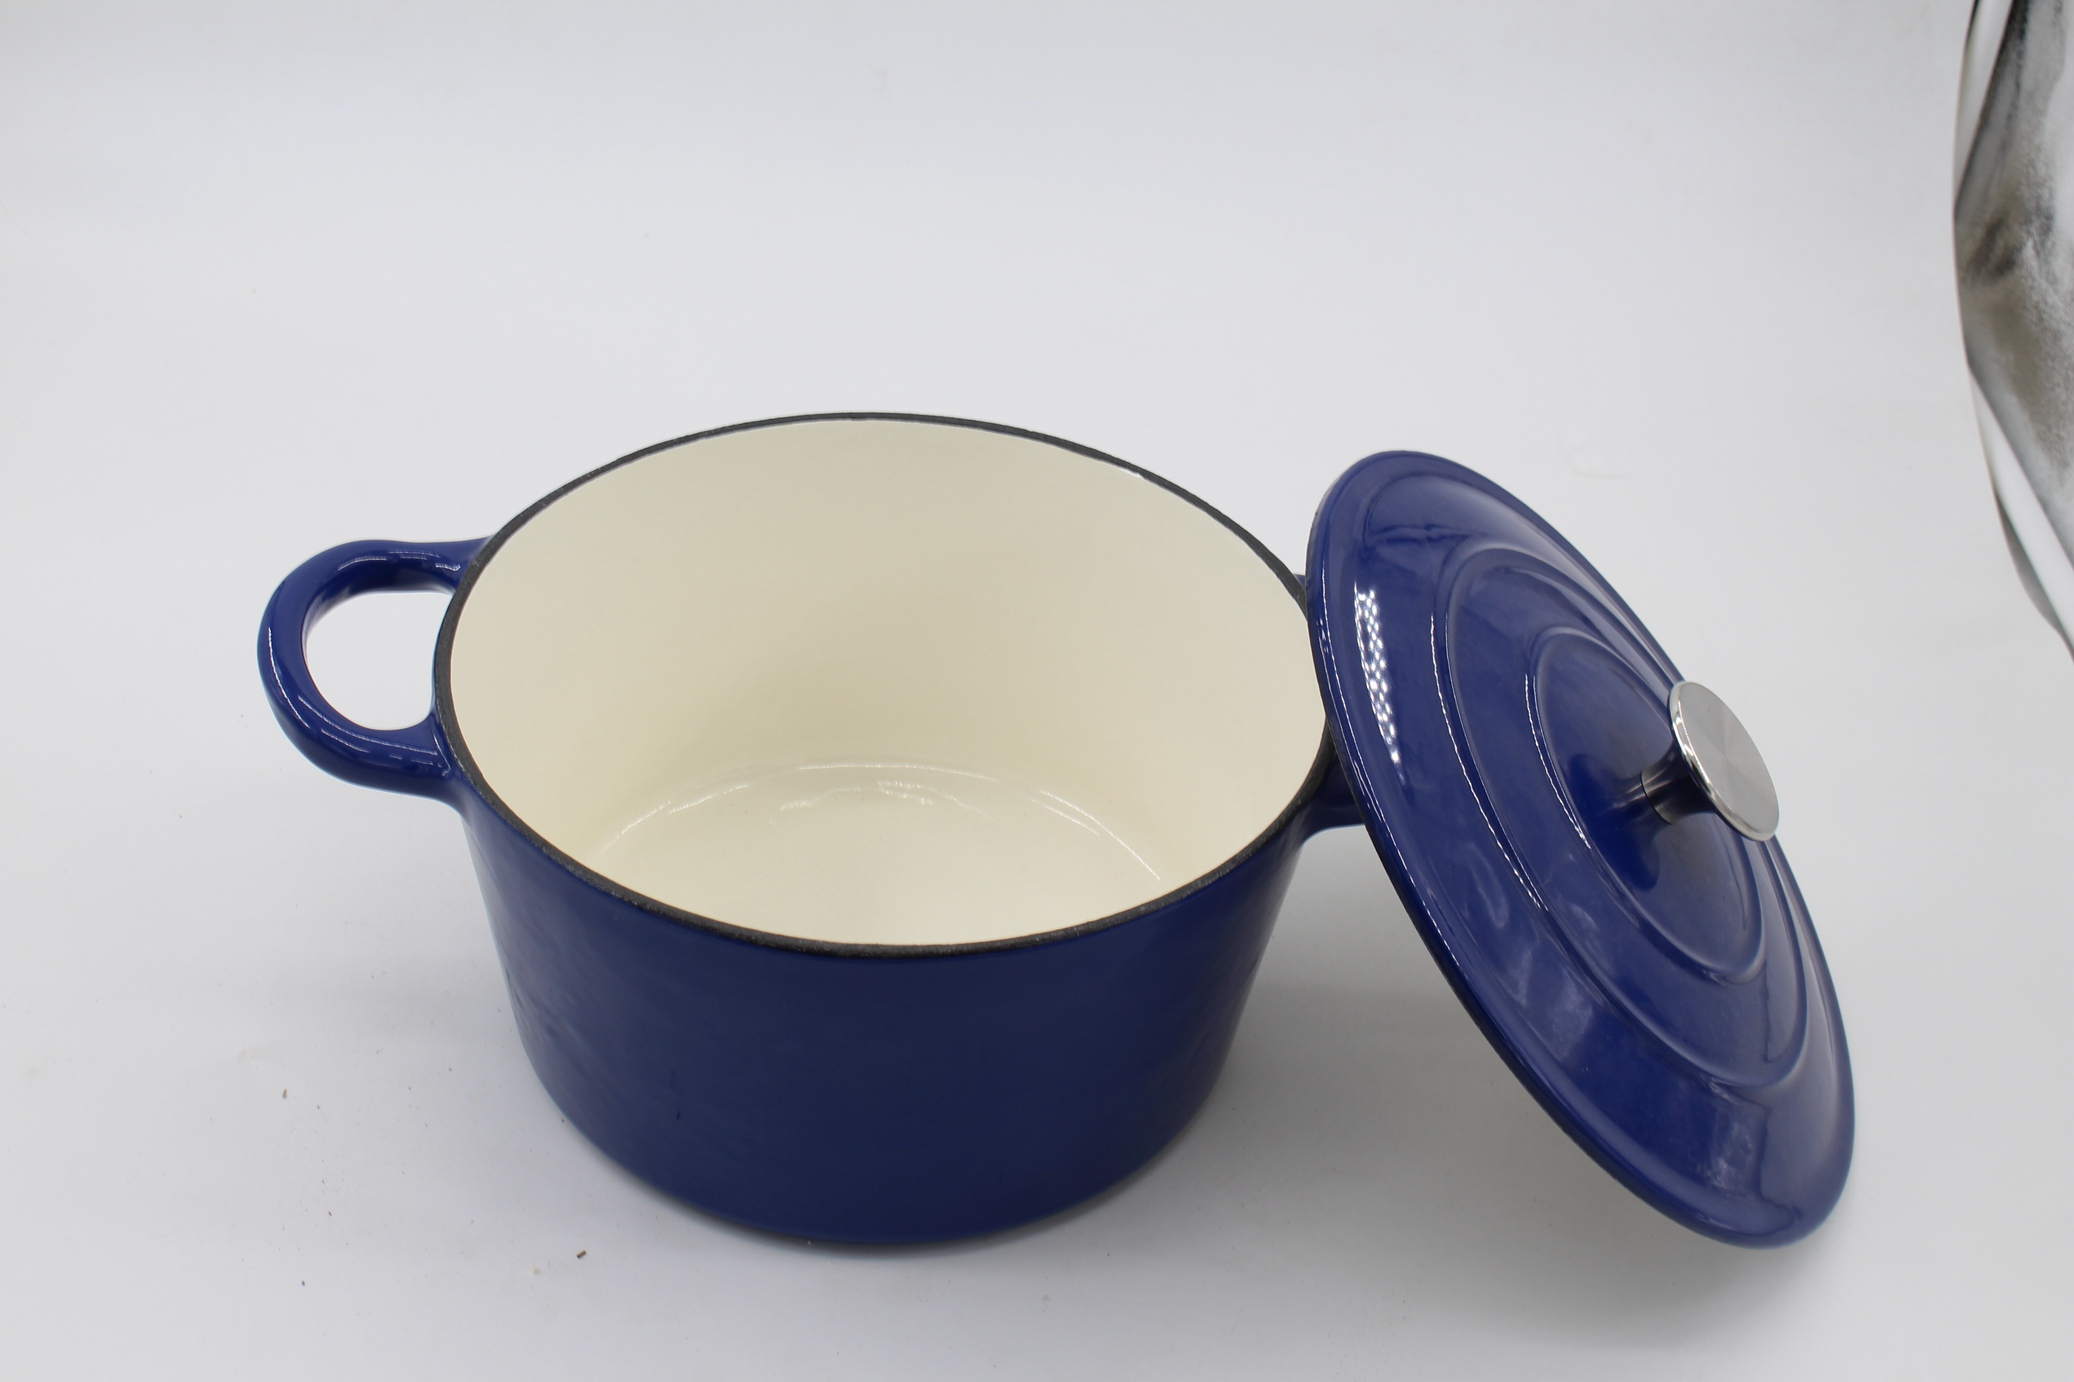 enamel coating kitchen cooking pot